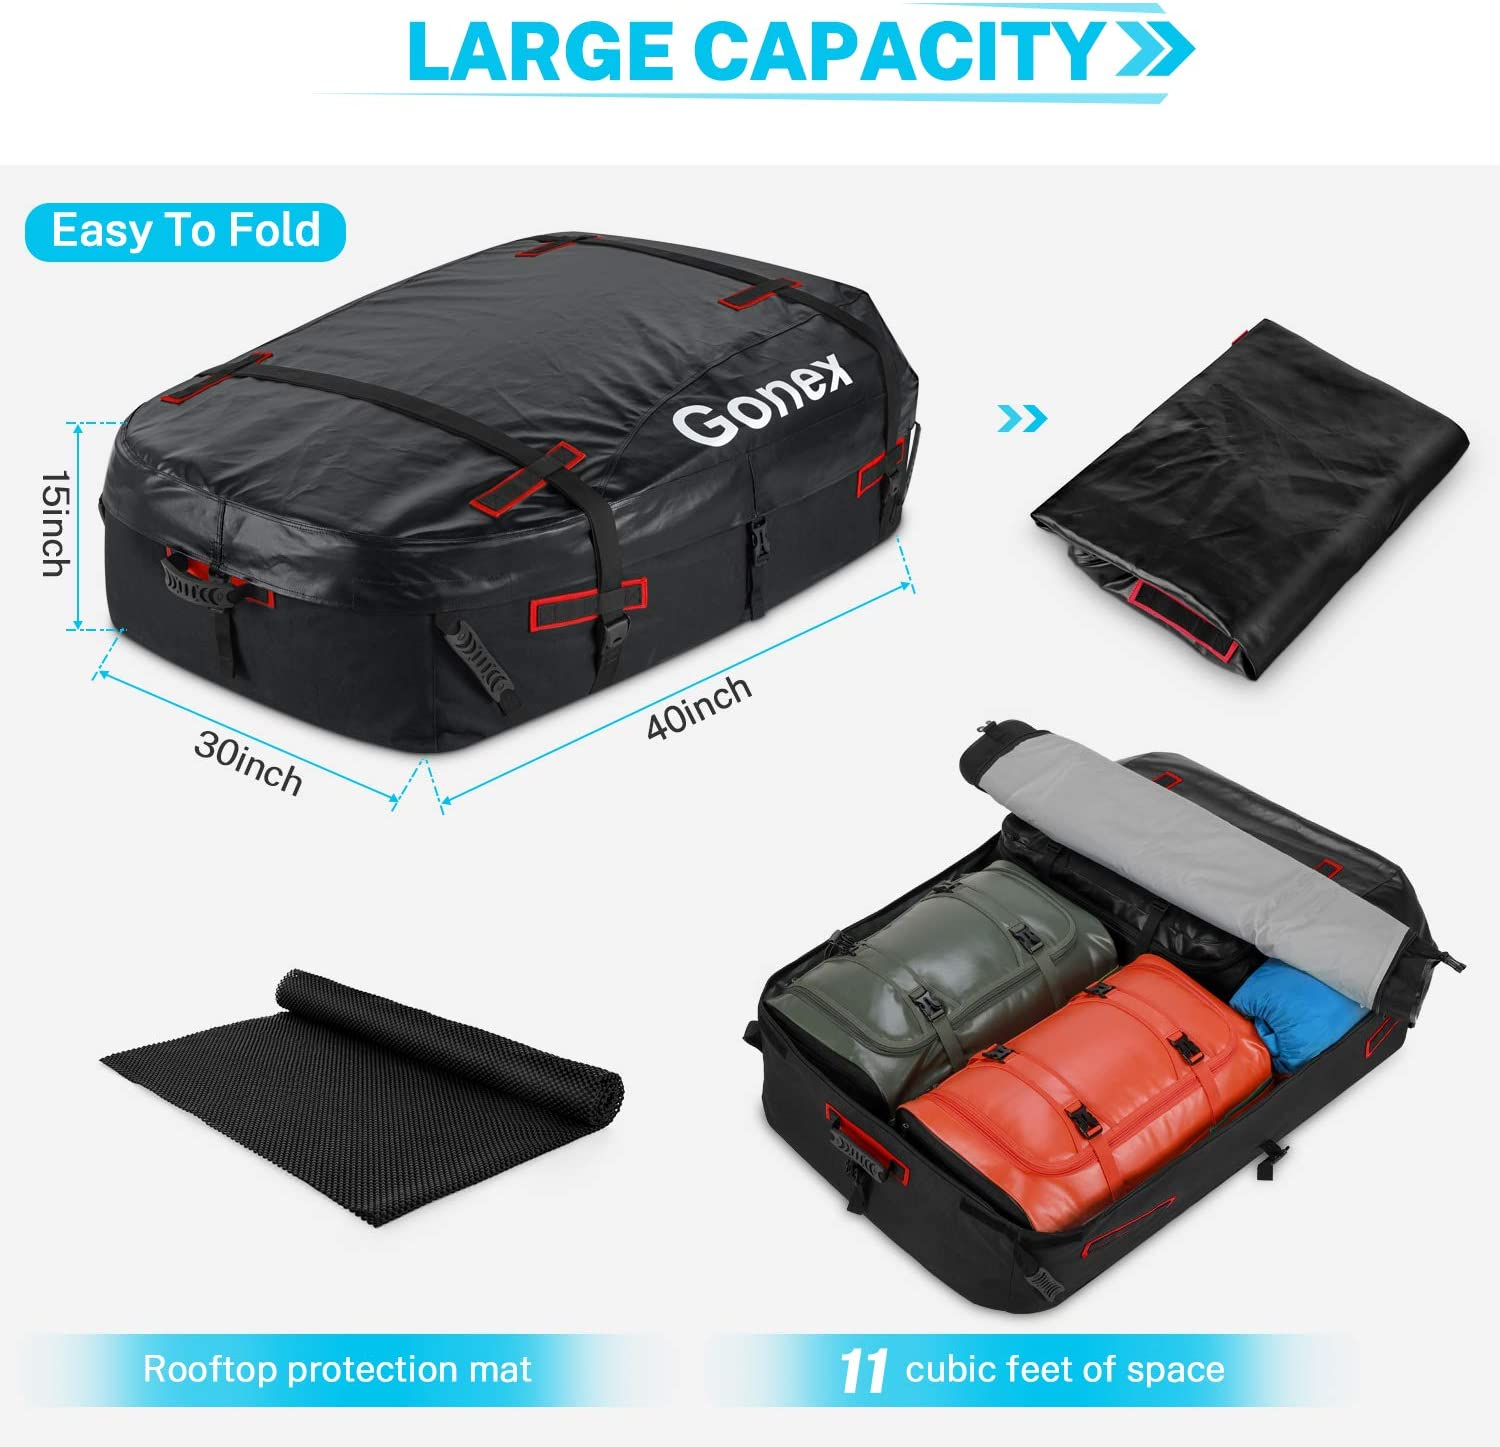 Black/&Red 1200D Strong Waterproof Rooftop Cargo Carrier Bag 11 Cubic Feet Foldable Soft Luggage Storage Bag with Protective Mat Gonex Car Roof Bag Fits All Vehicle With//Without Rack